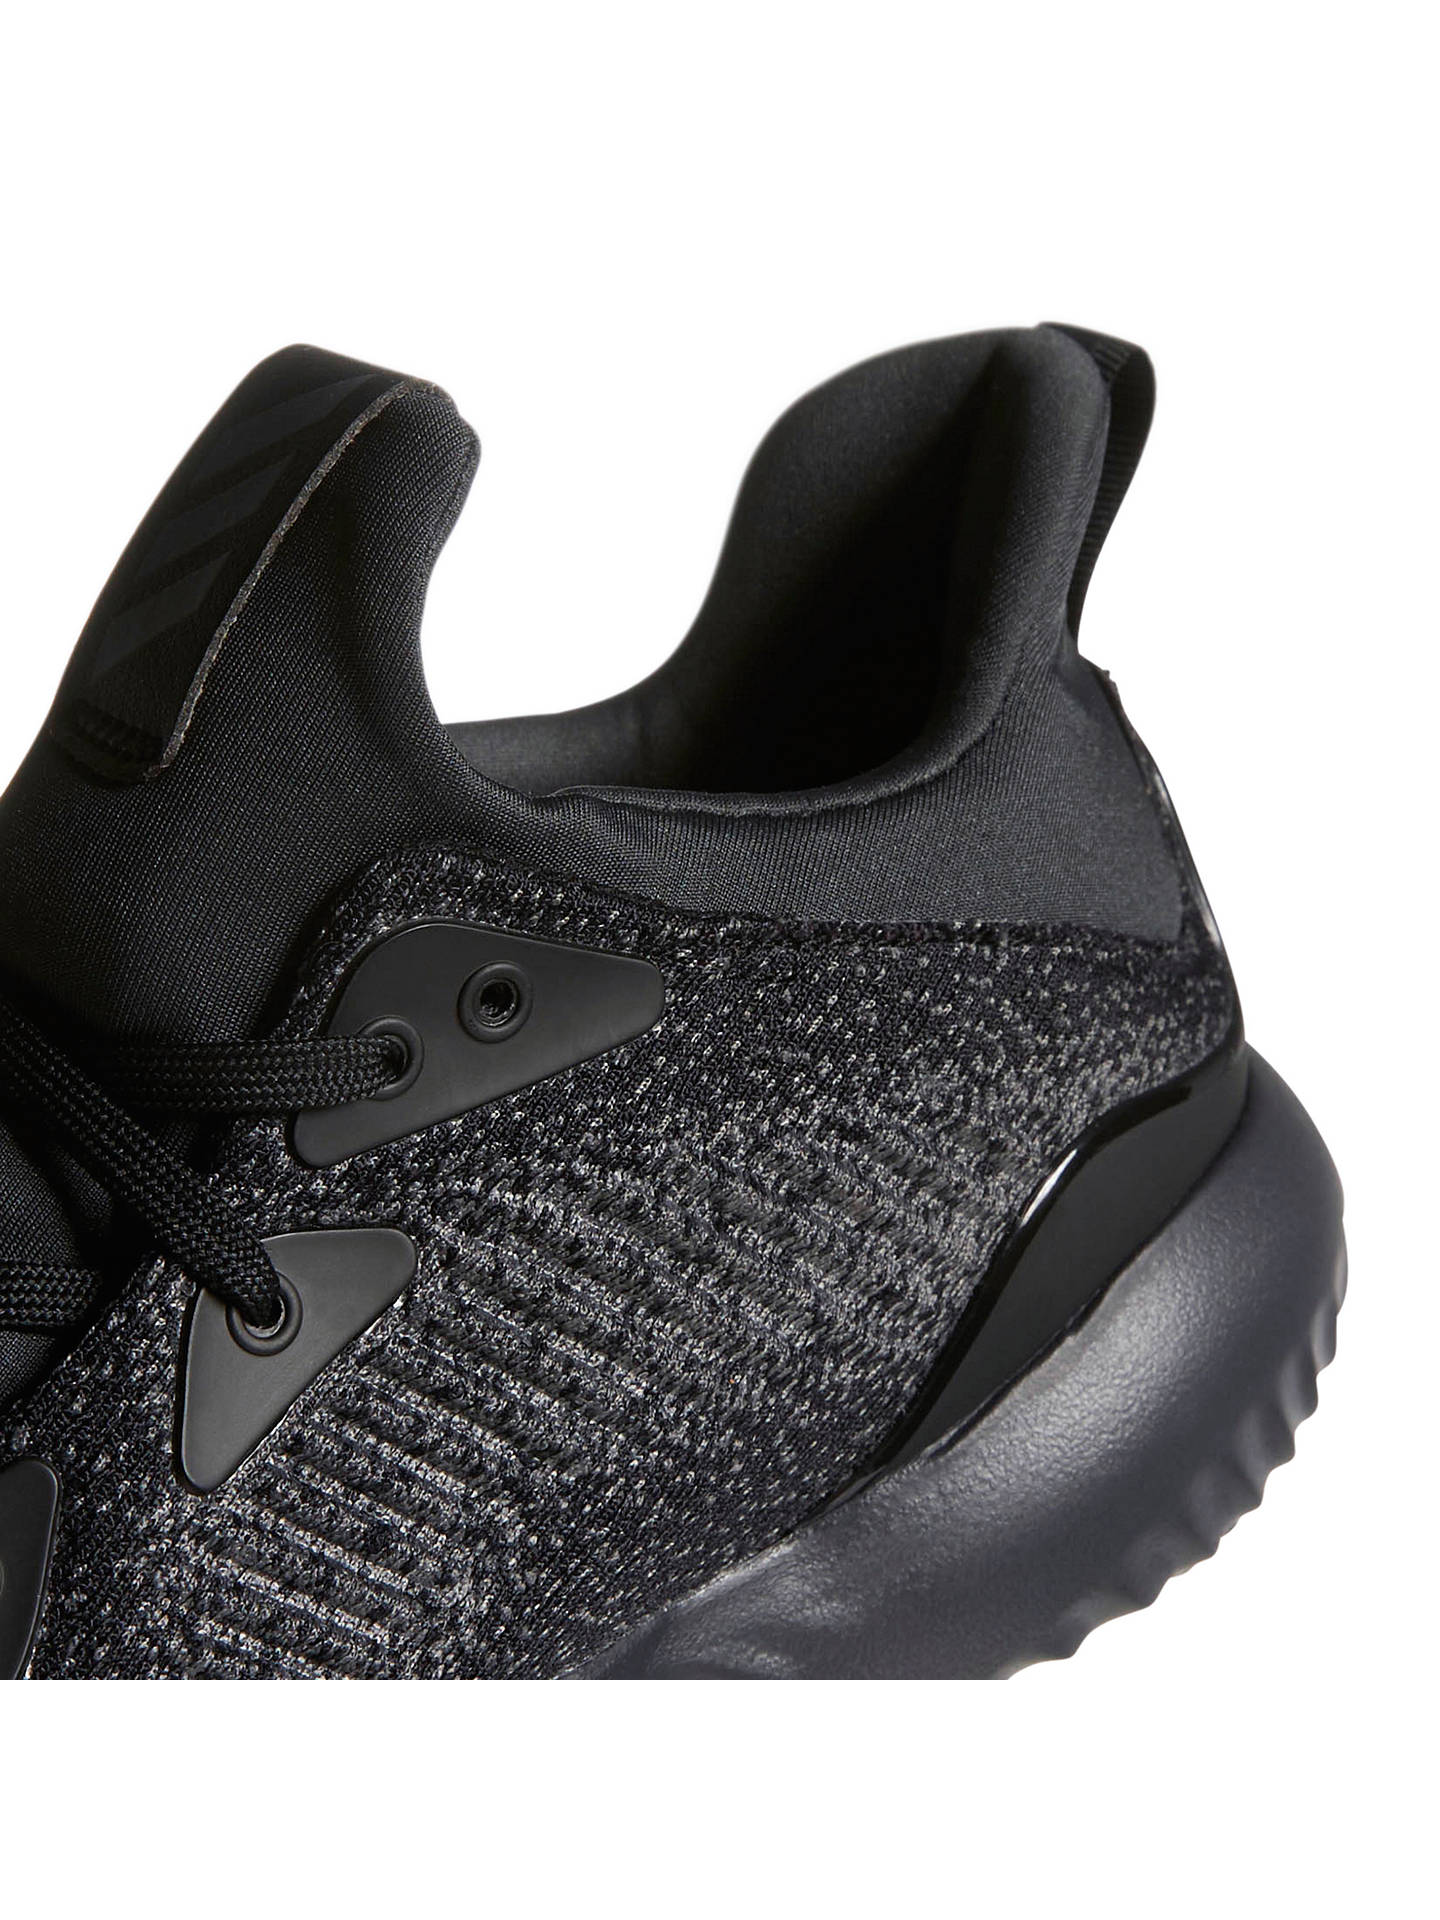 6477a9ae3 adidas Alphabounce EM Men s Running Shoes at John Lewis   Partners